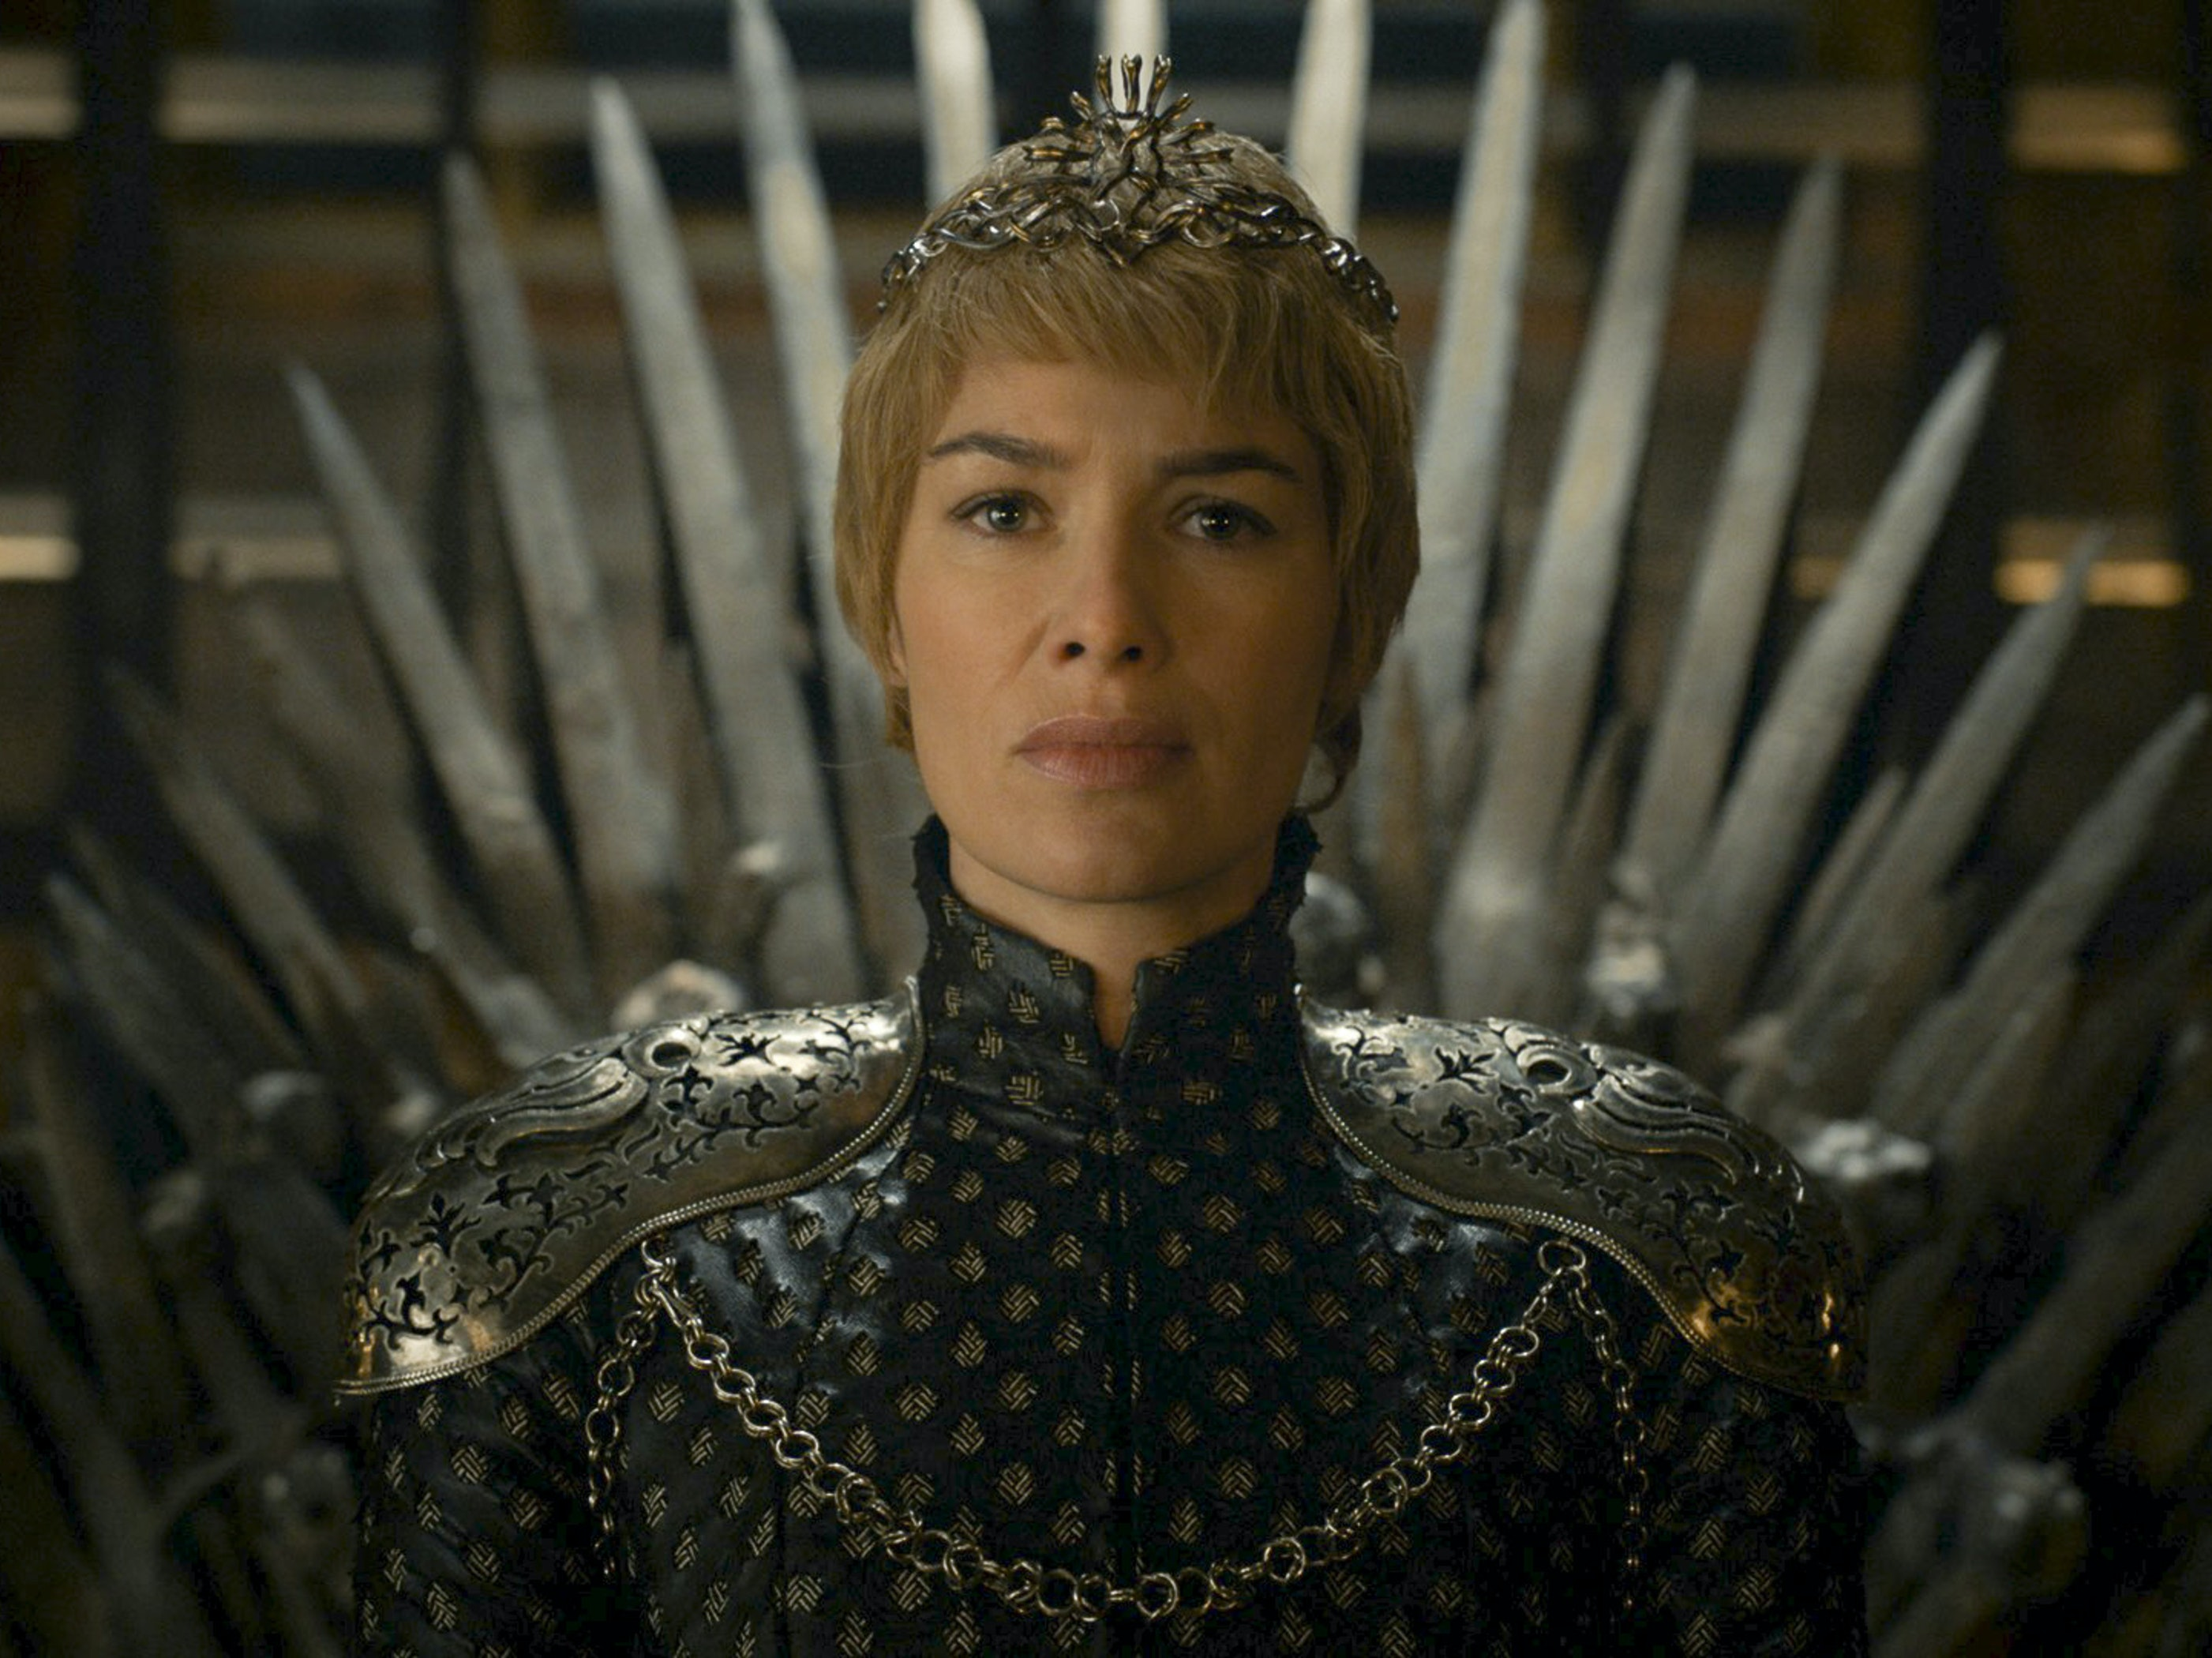 The Iron Throne is the Defense Against the Dark Arts of Westeros